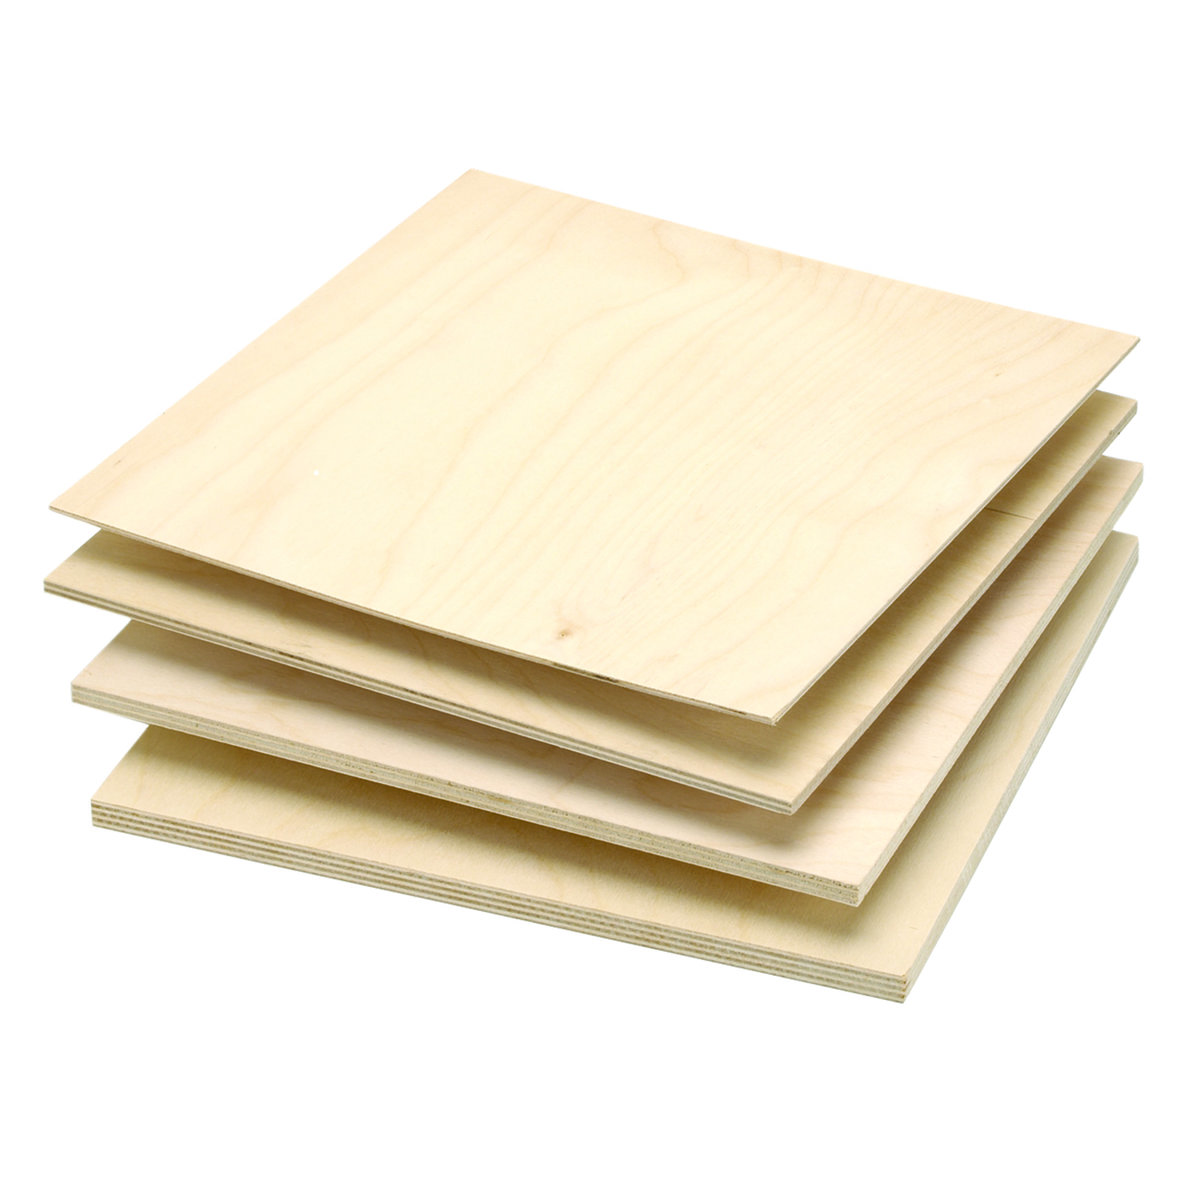 Baltic Birch Plywood 3mm 1 8 X 30 X 48